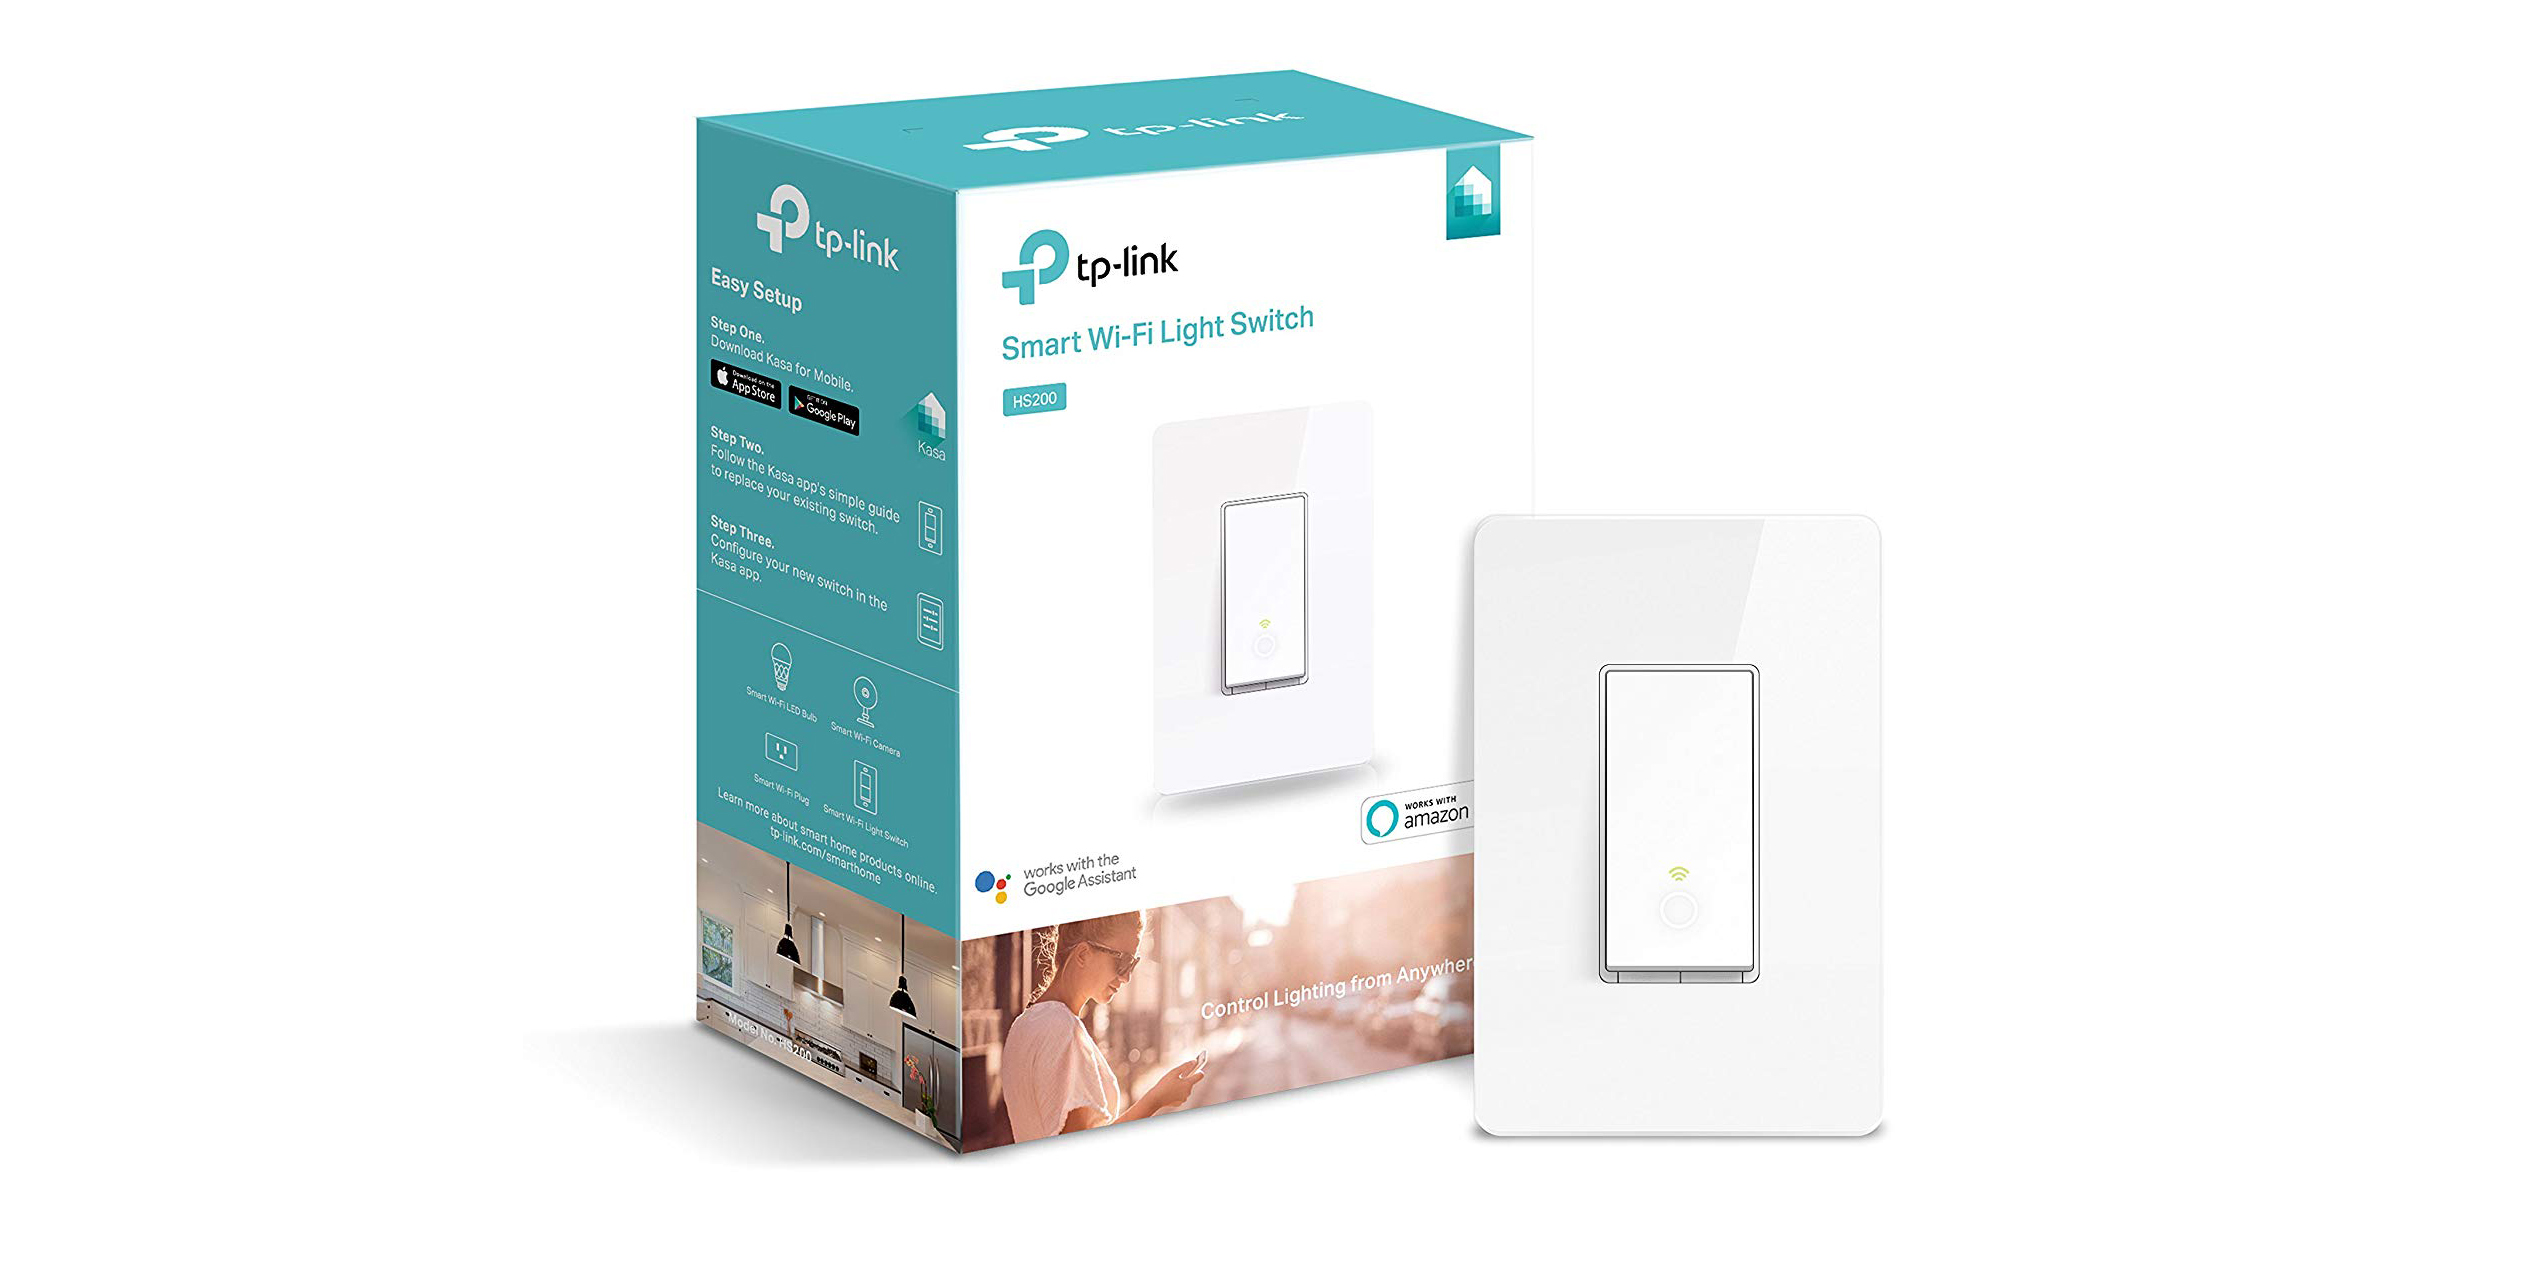 Outfit your home with 3 energy-conscious TP-Link smart switches for $58 in today's best Green Deals